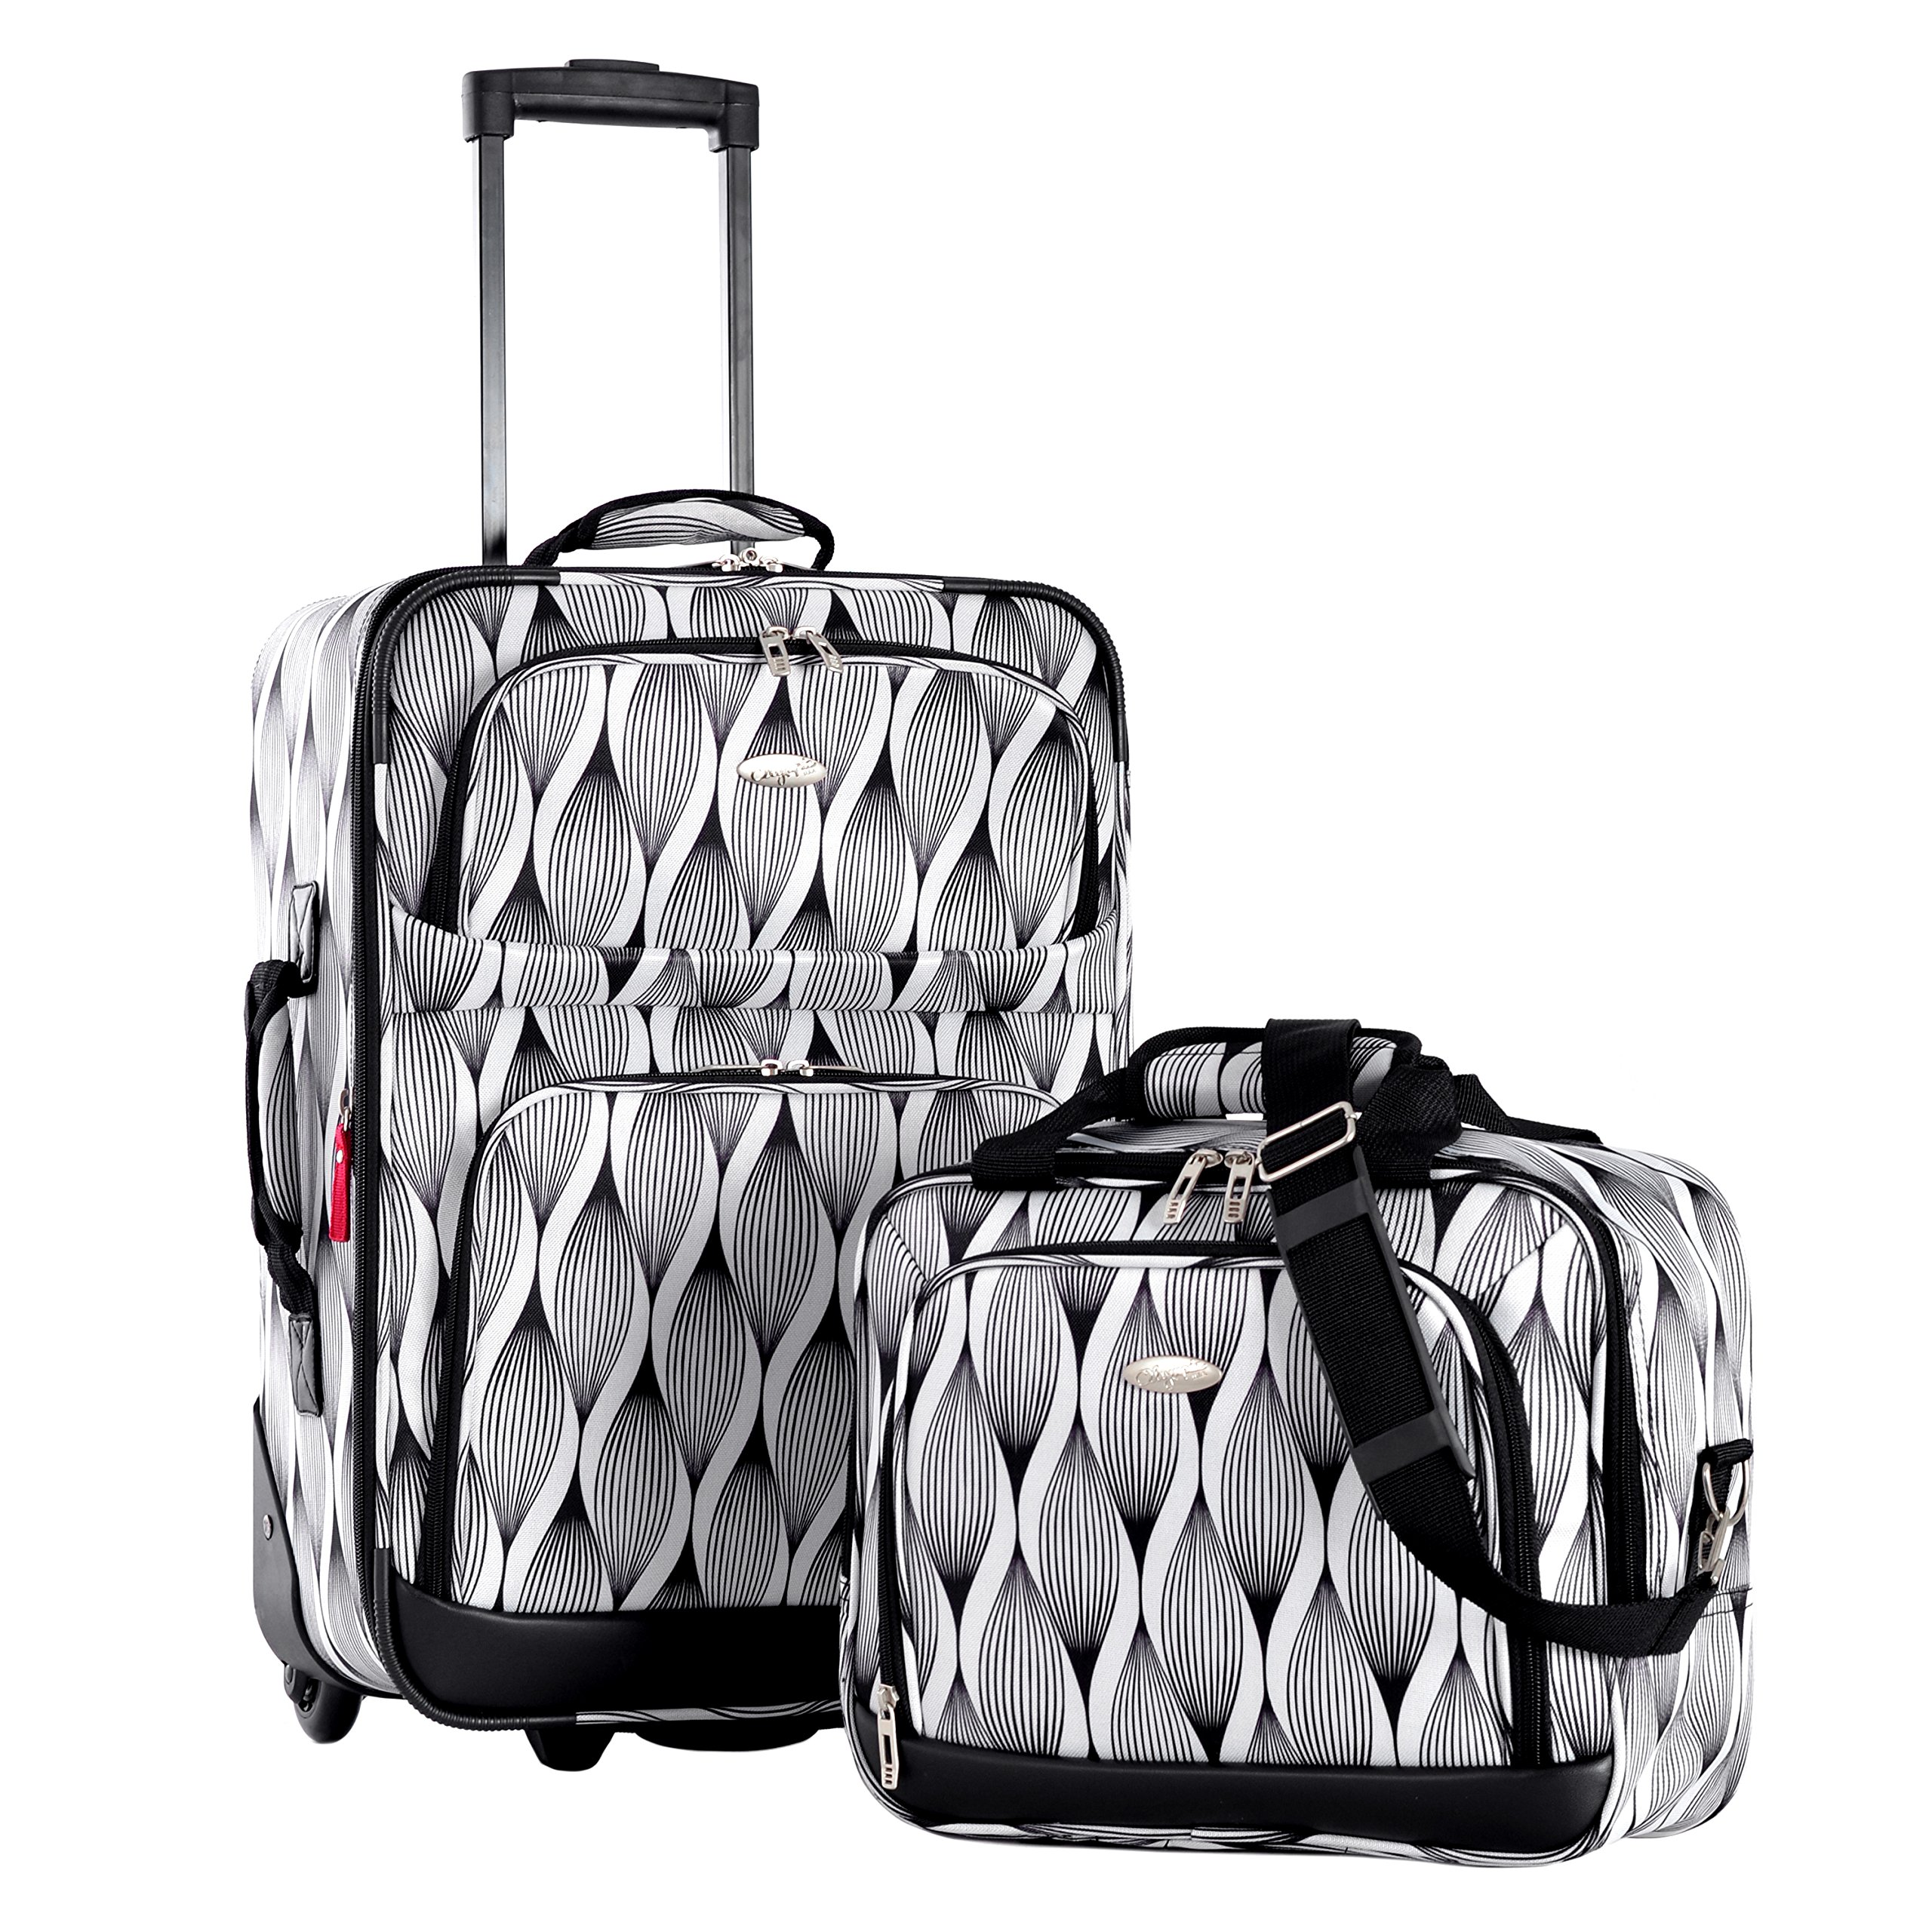 Olympia Let's Travel 2pc Carry-on Luggage Set, Spiral